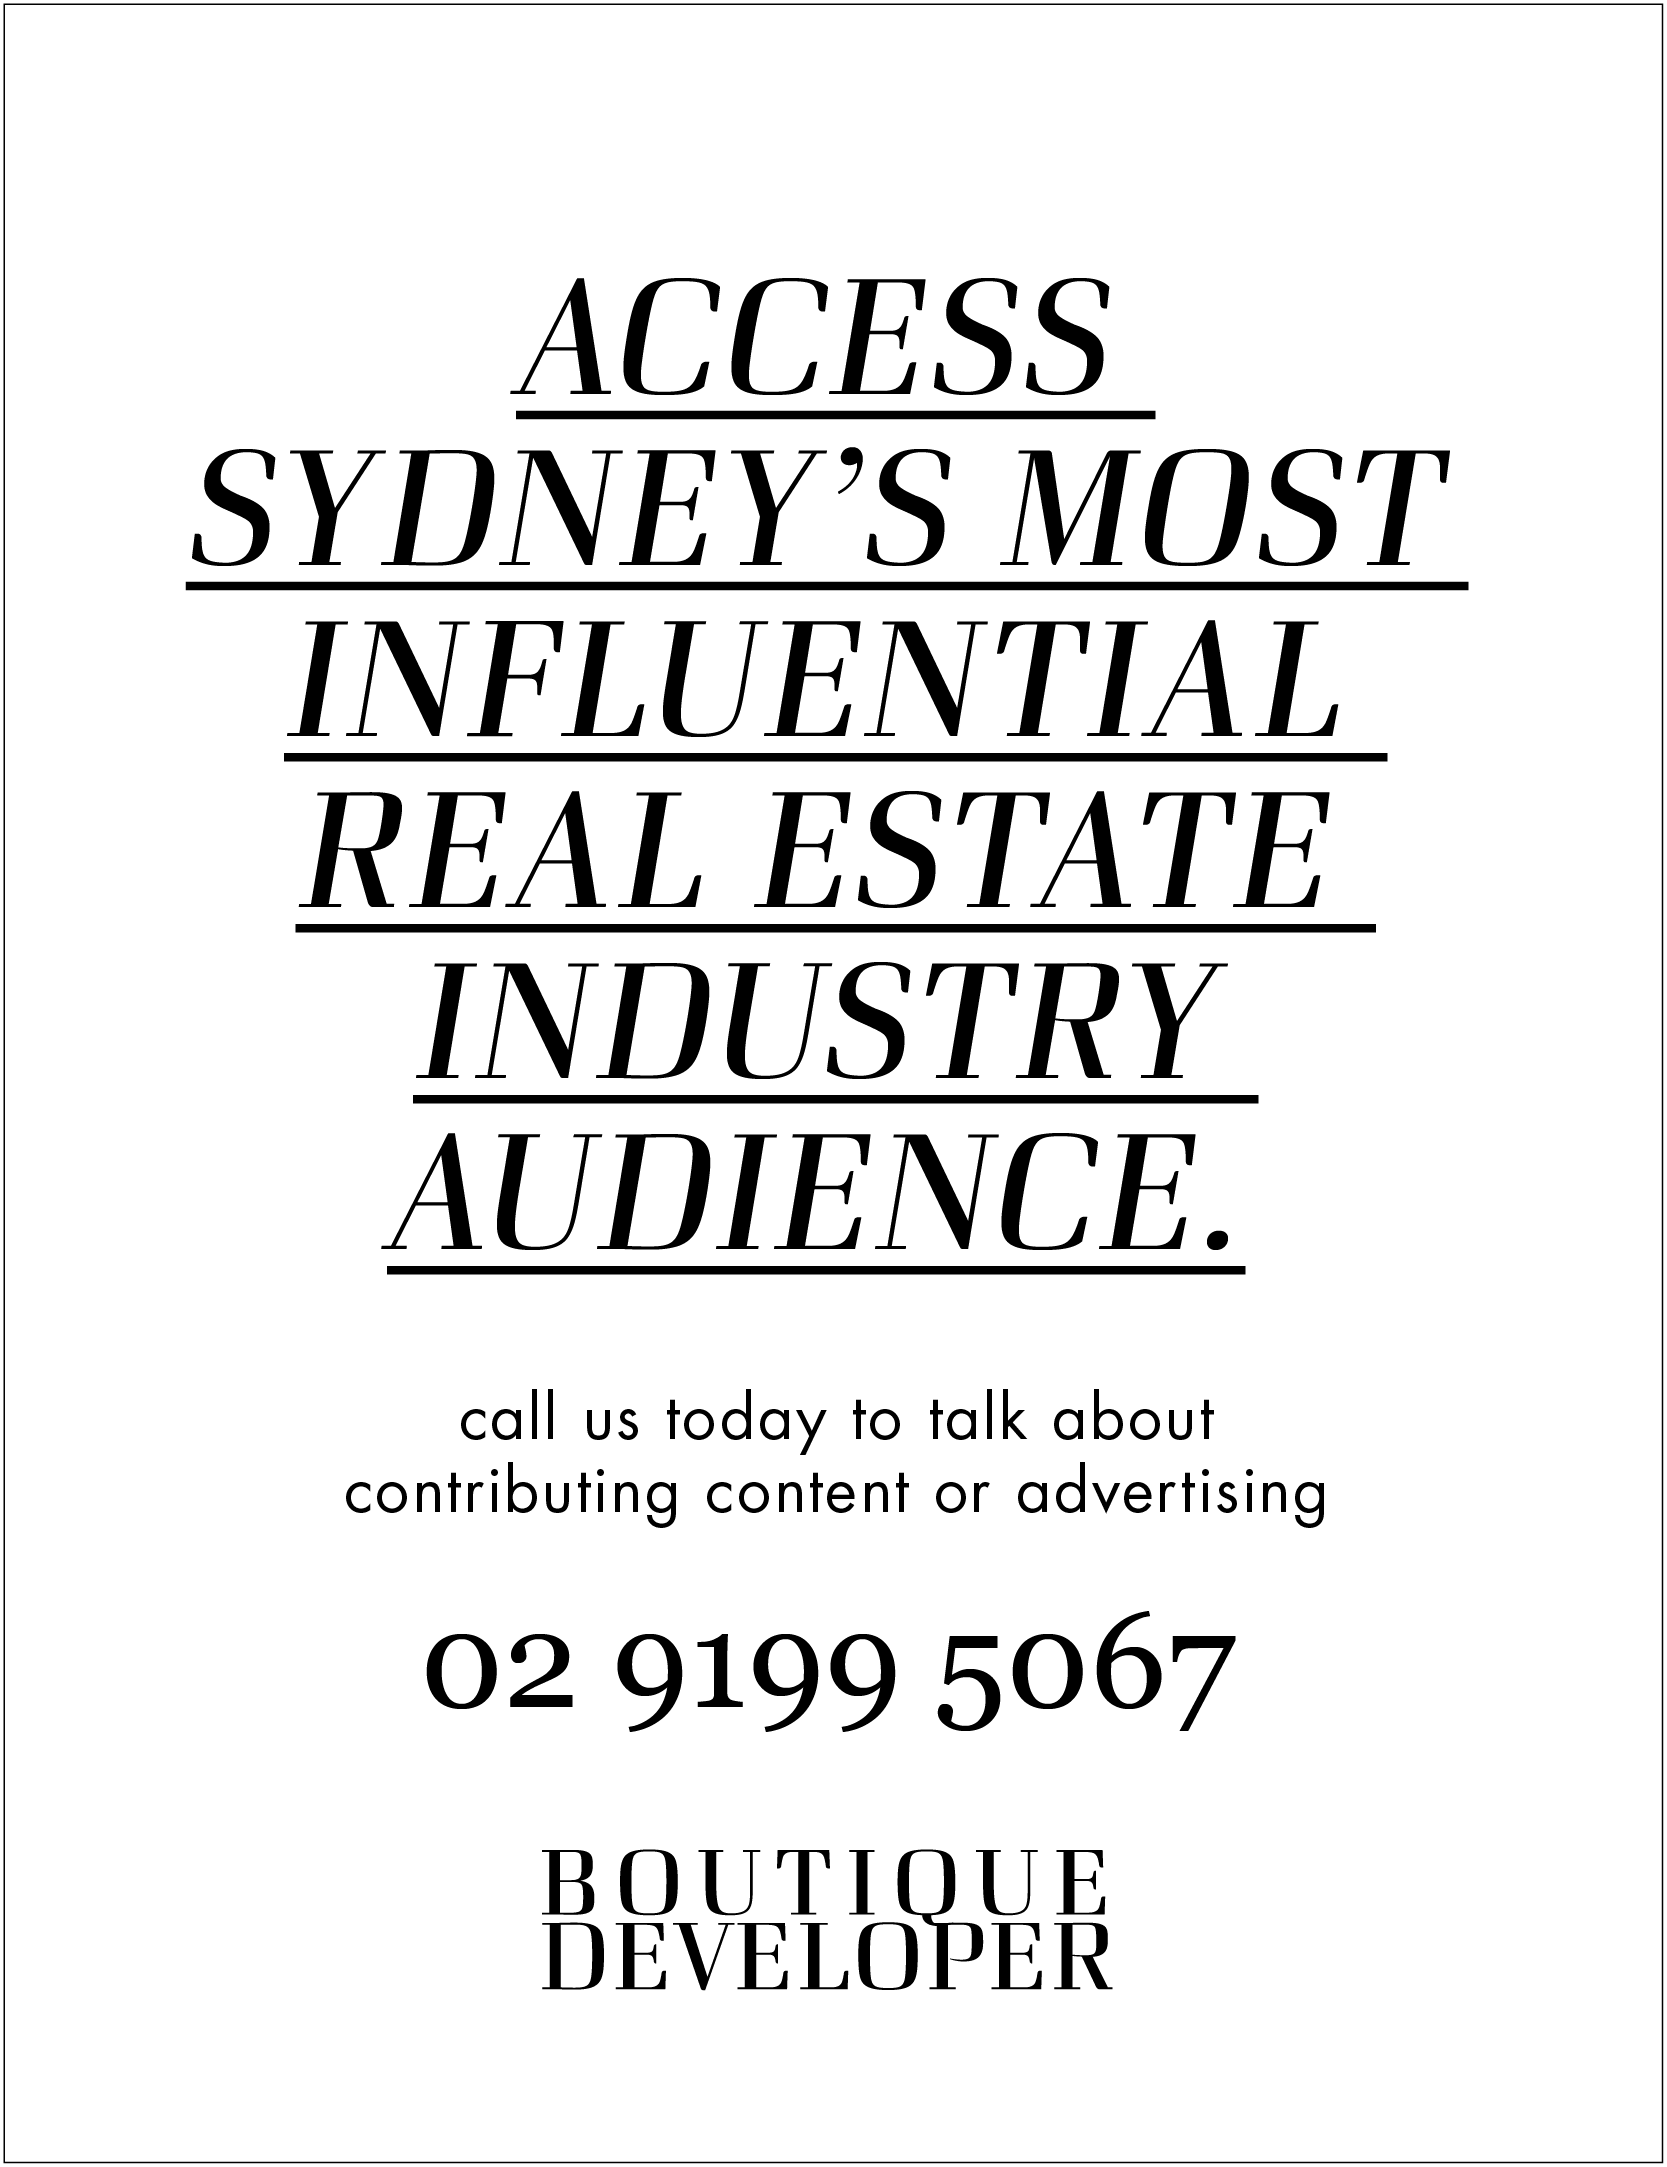 Real estate industry marketing